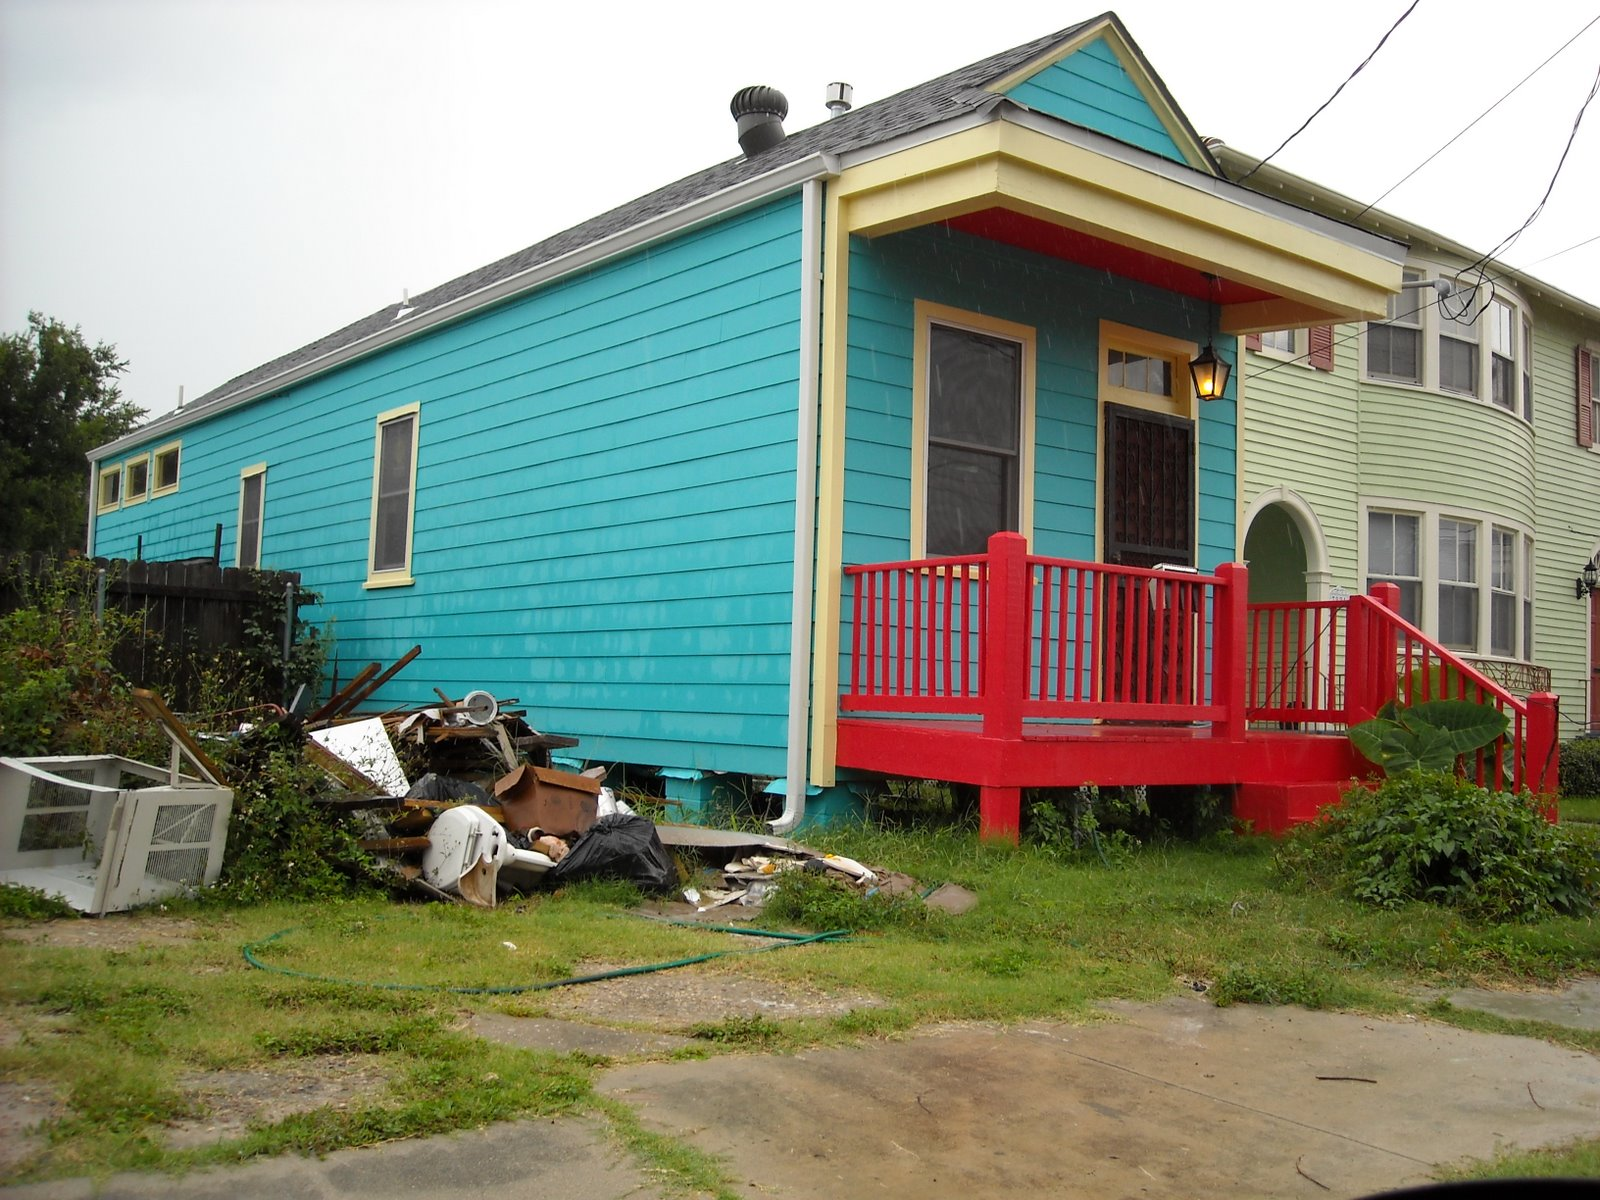 Blue House, Red Porch